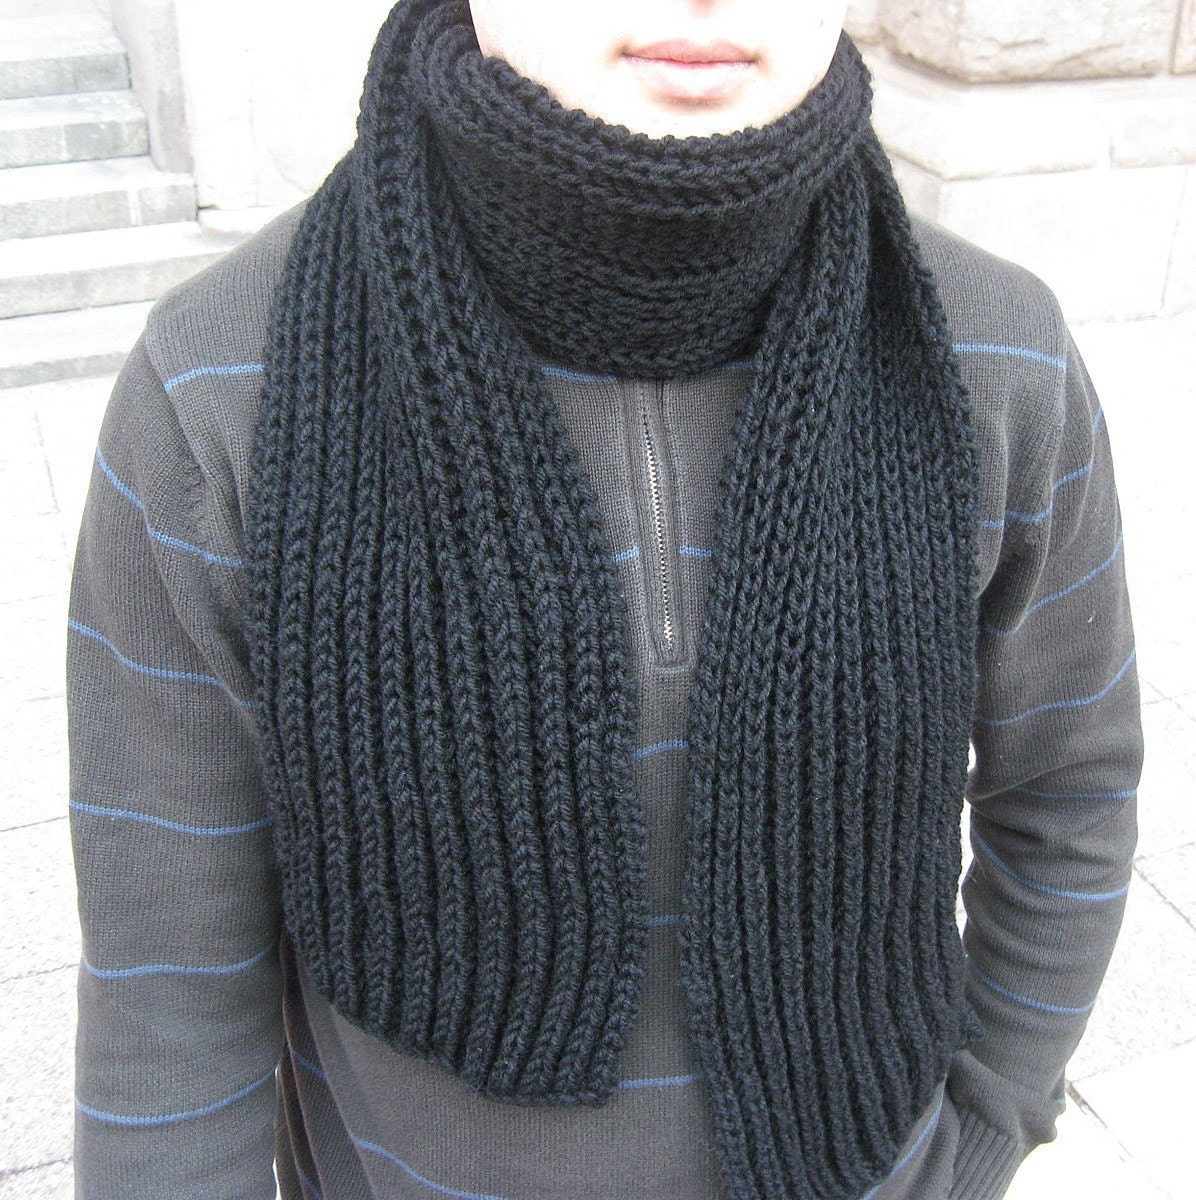 Knit Wool Scarf for MEN best gift for Him Hand Knitted Scarves For Men Best Wool Scarves For Men